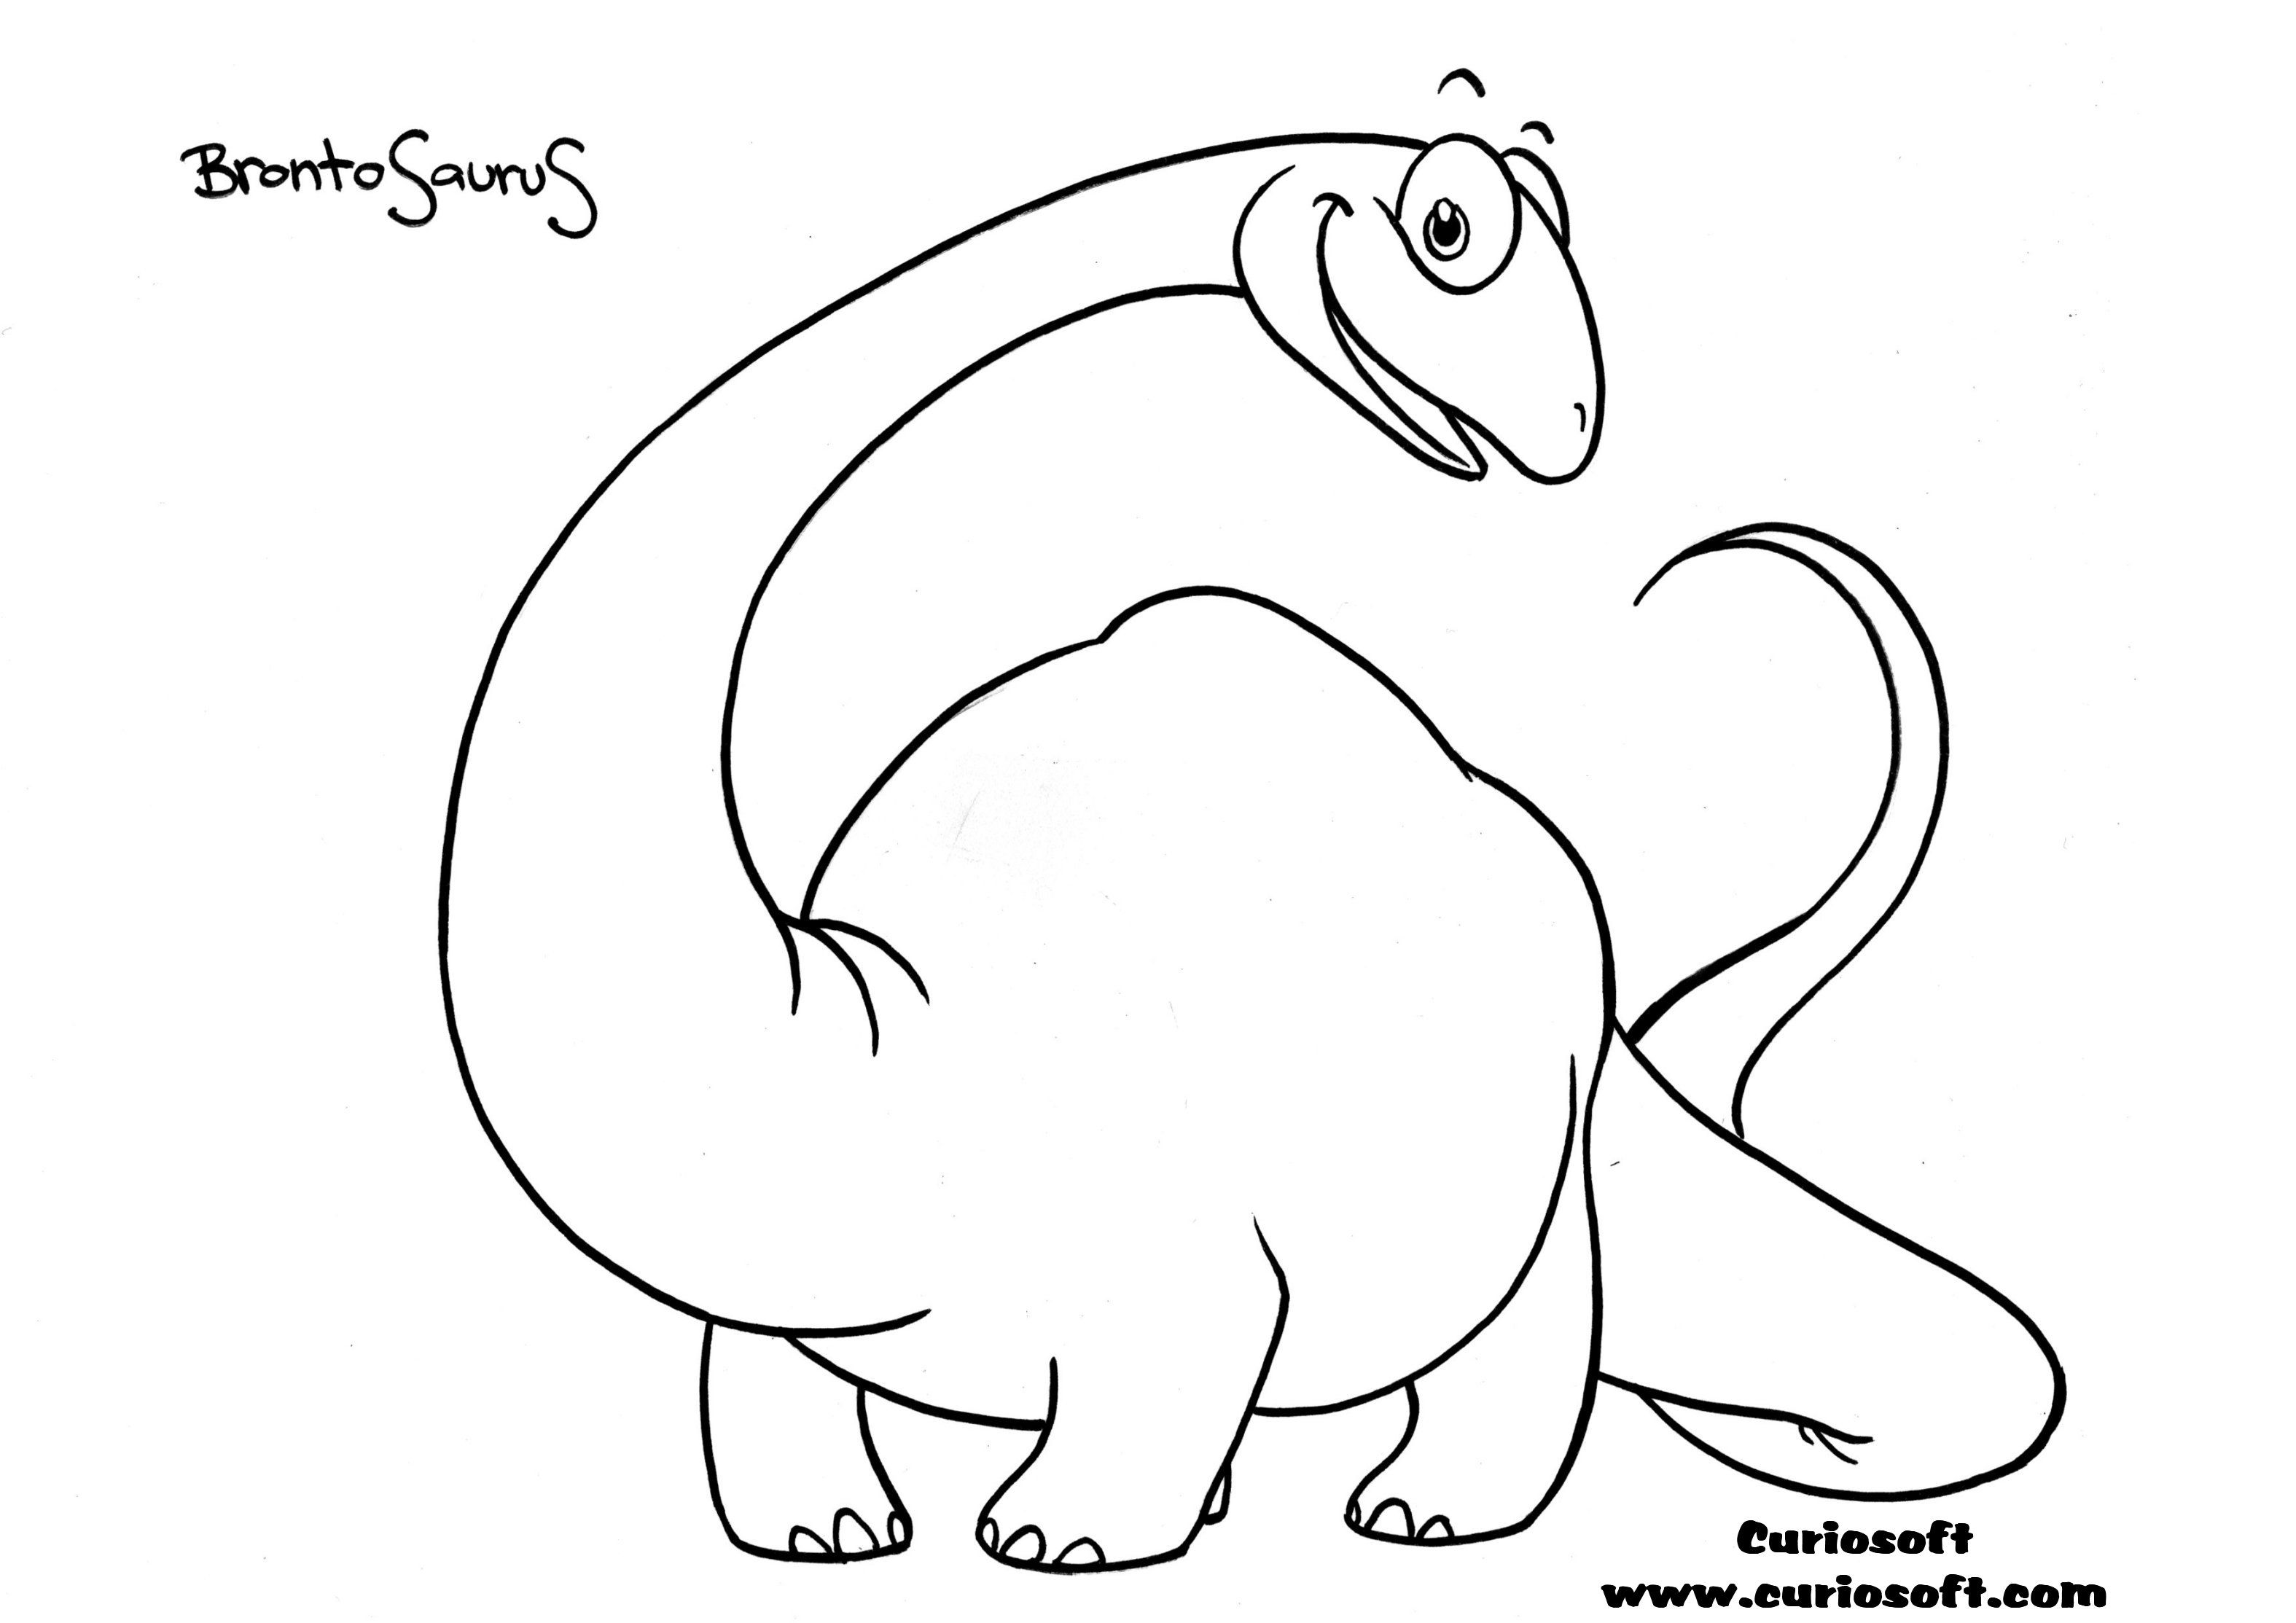 Dinosaur Coloring Pages! Cute illustrations wit names